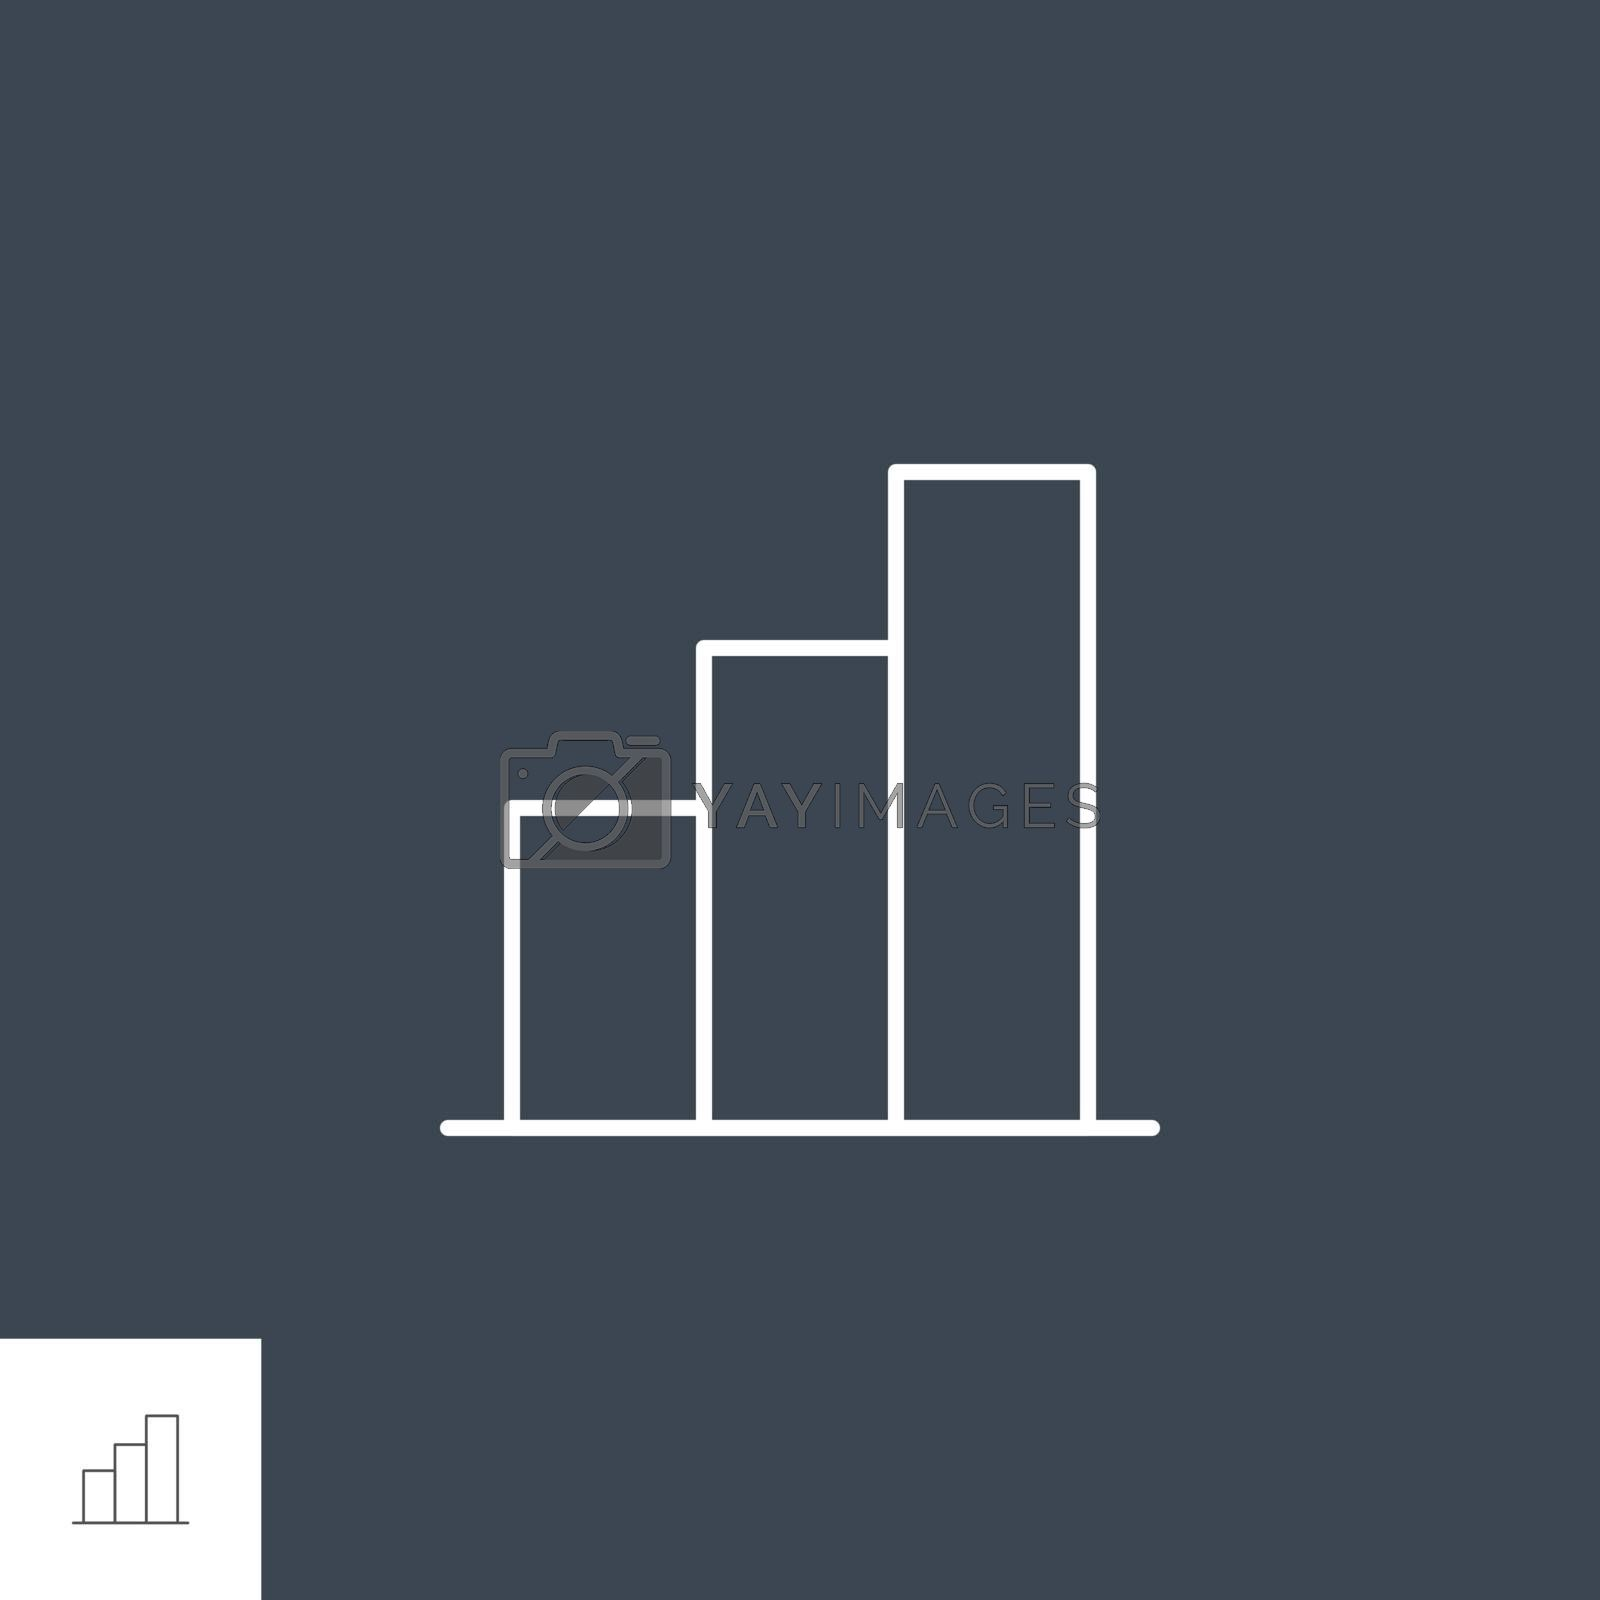 Bar Chart Related Vector Line Icon. Isolated on Black Background. Editable Stroke.